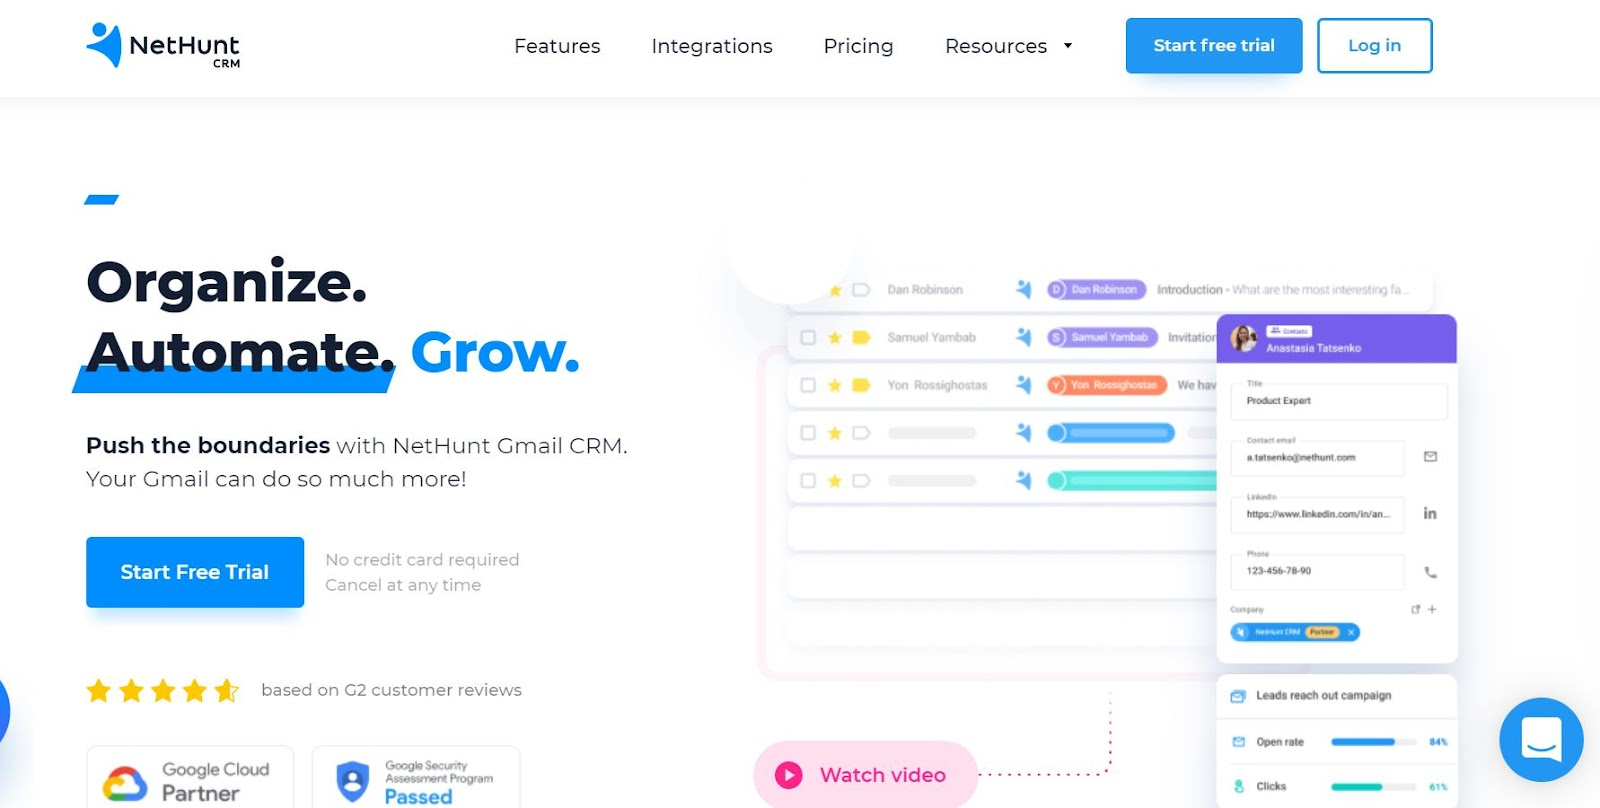 nethunt home page